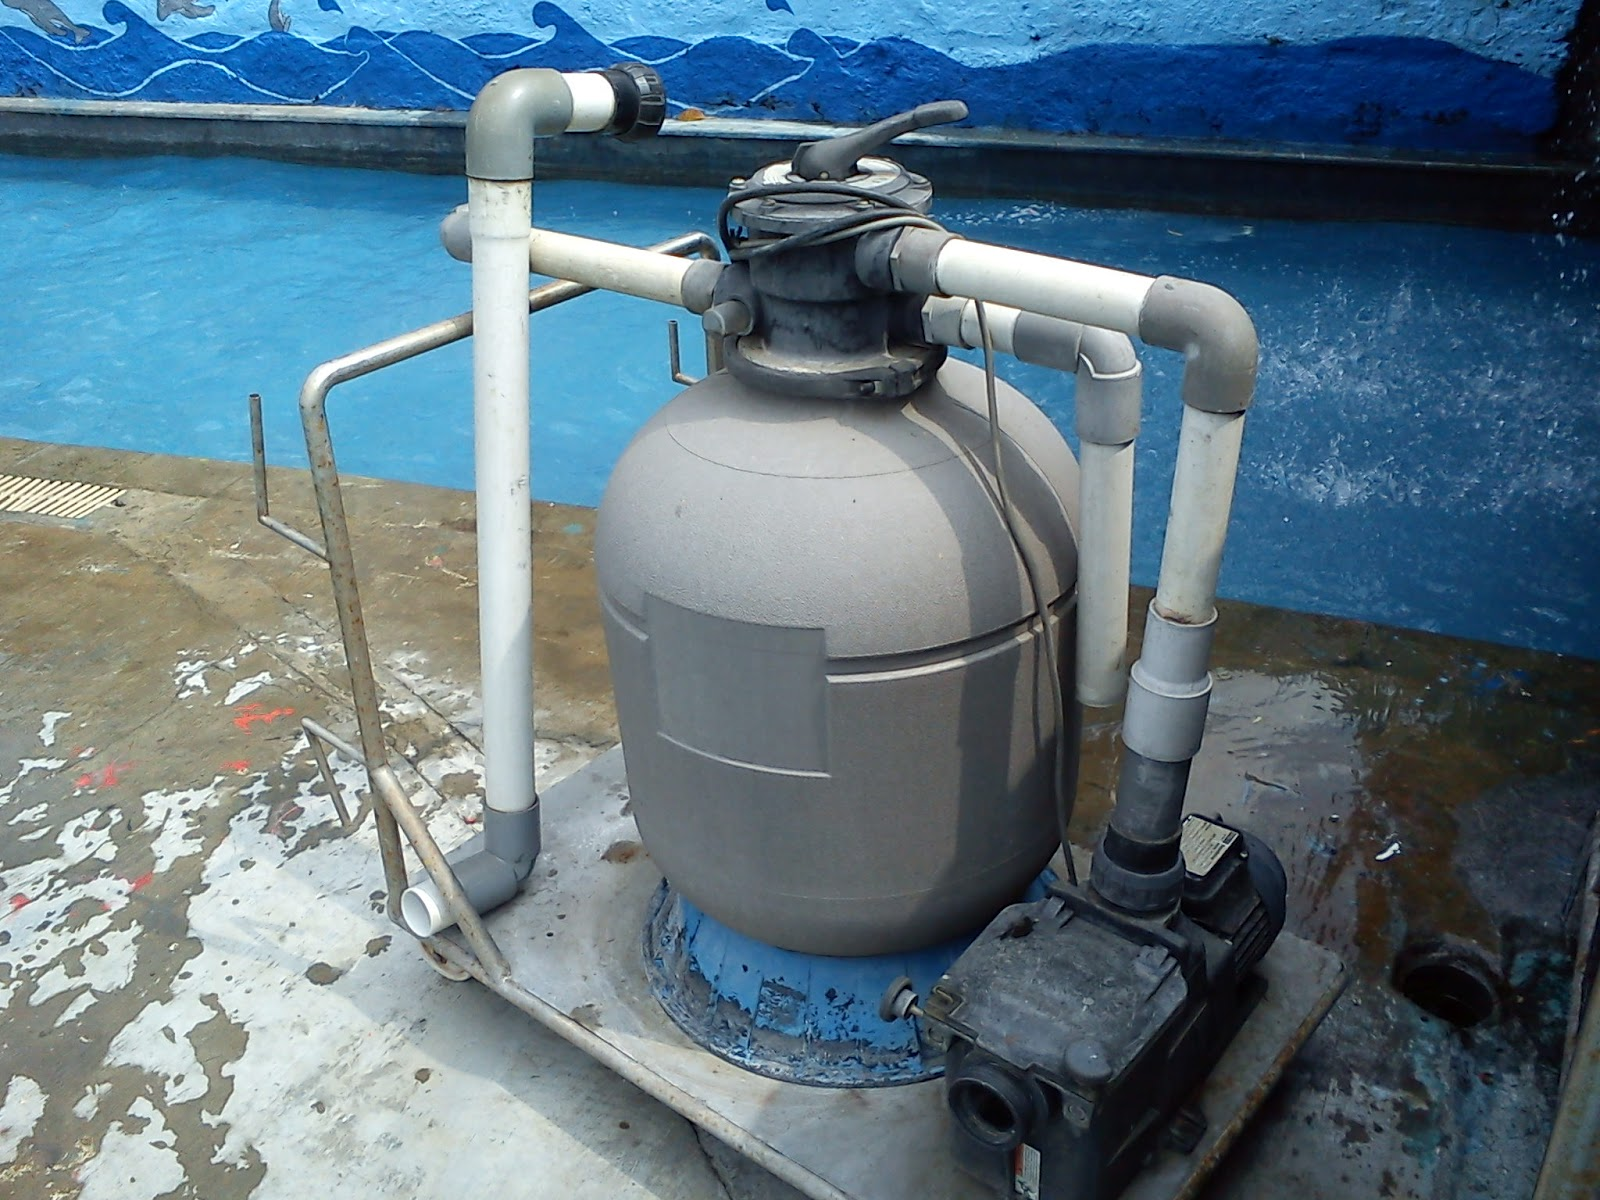 Hayward pool sand filter owners manual five posting - Hayward swimming pool ...